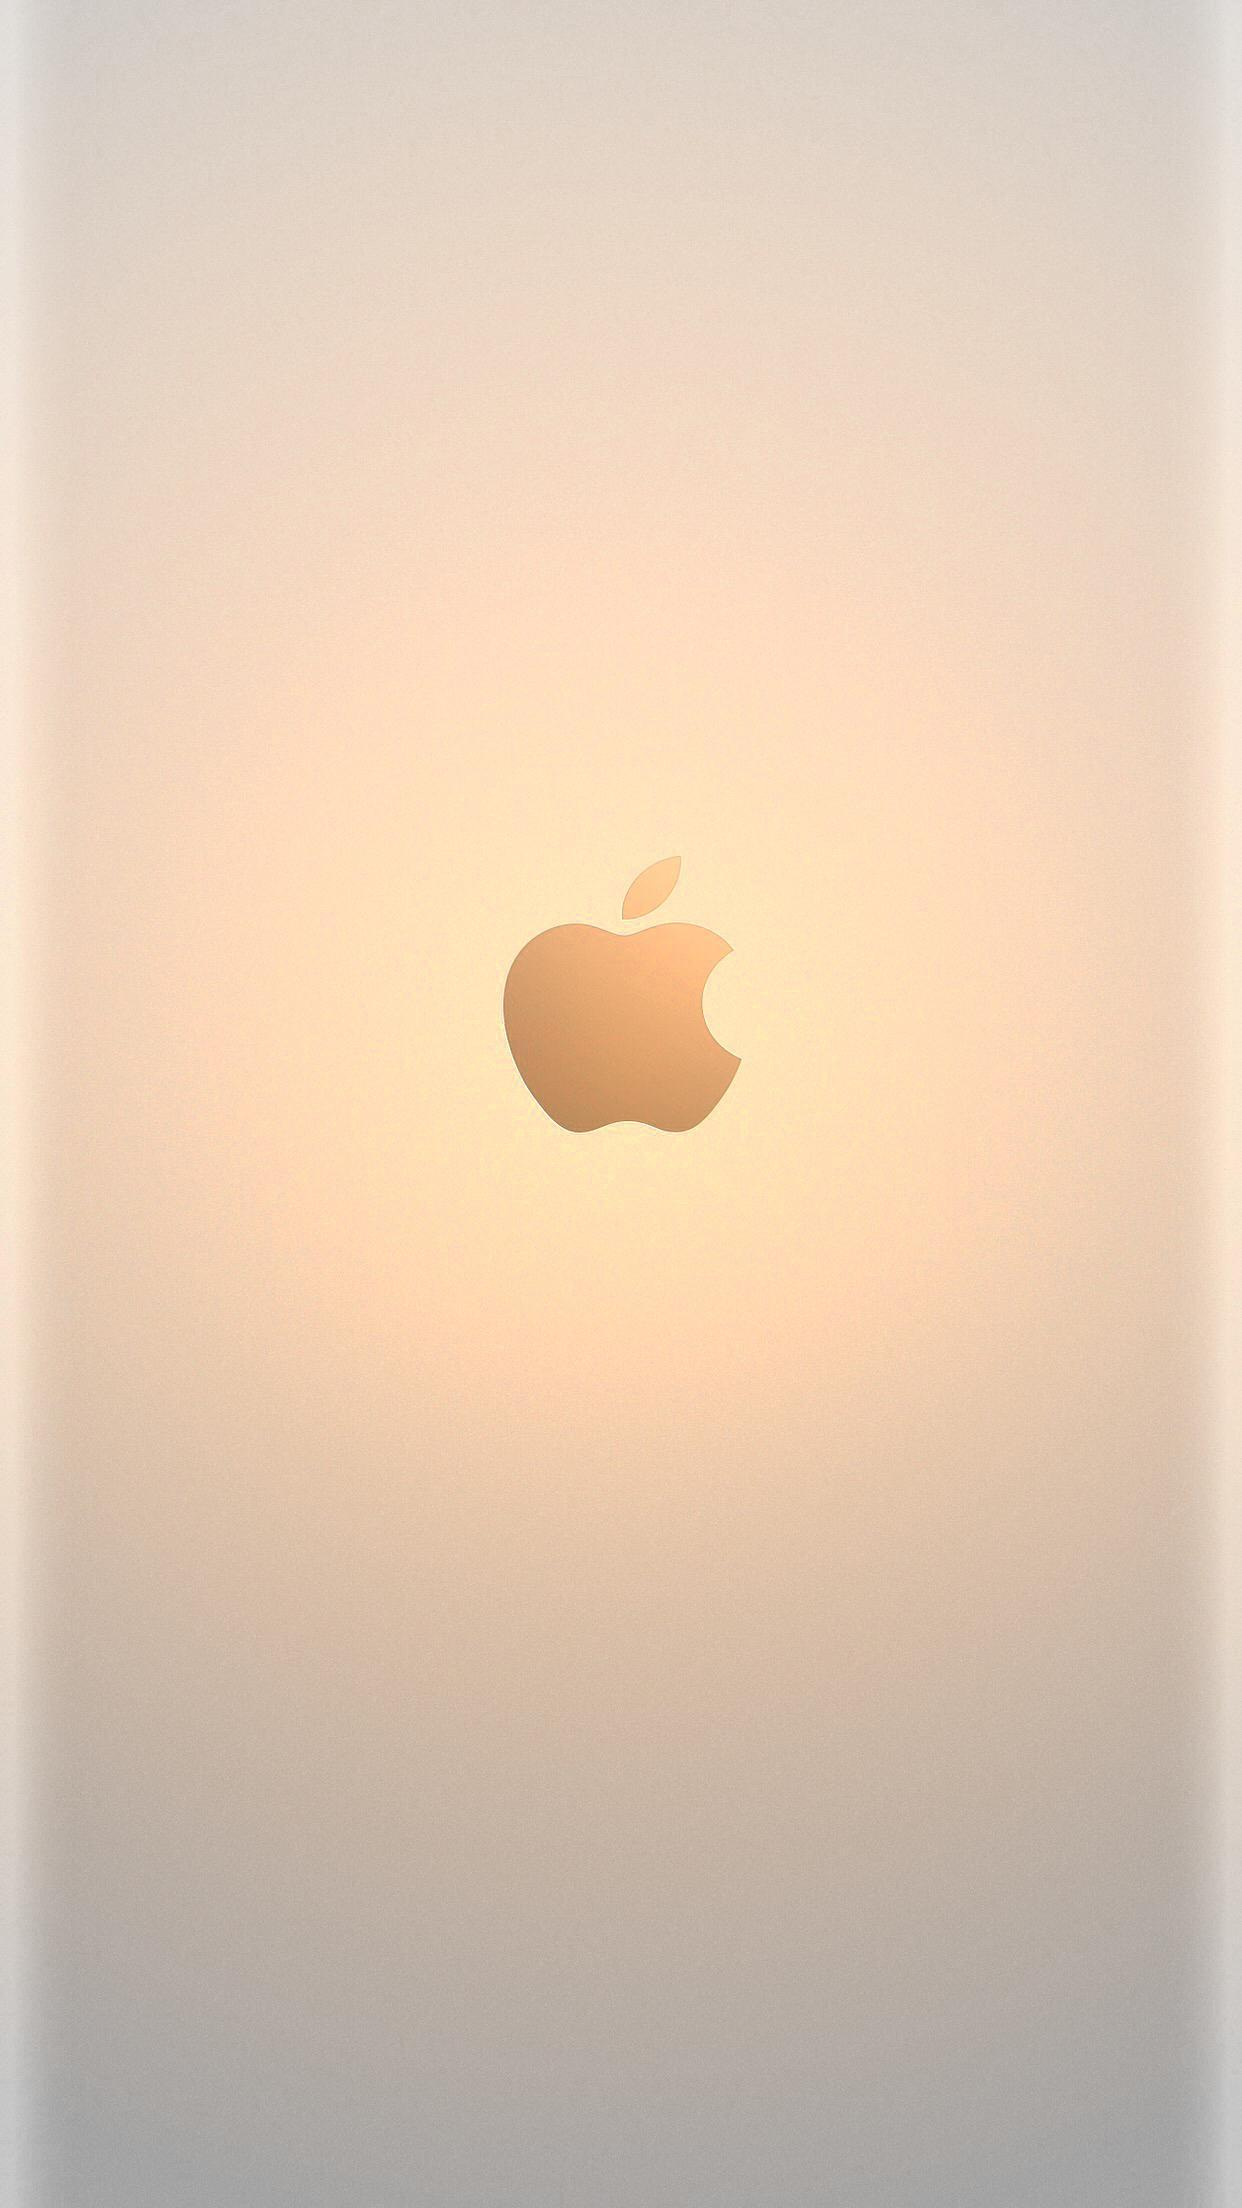 Iphone Plus Wallpaper Apple Iphone Back Rose Gold Pronounced Pic